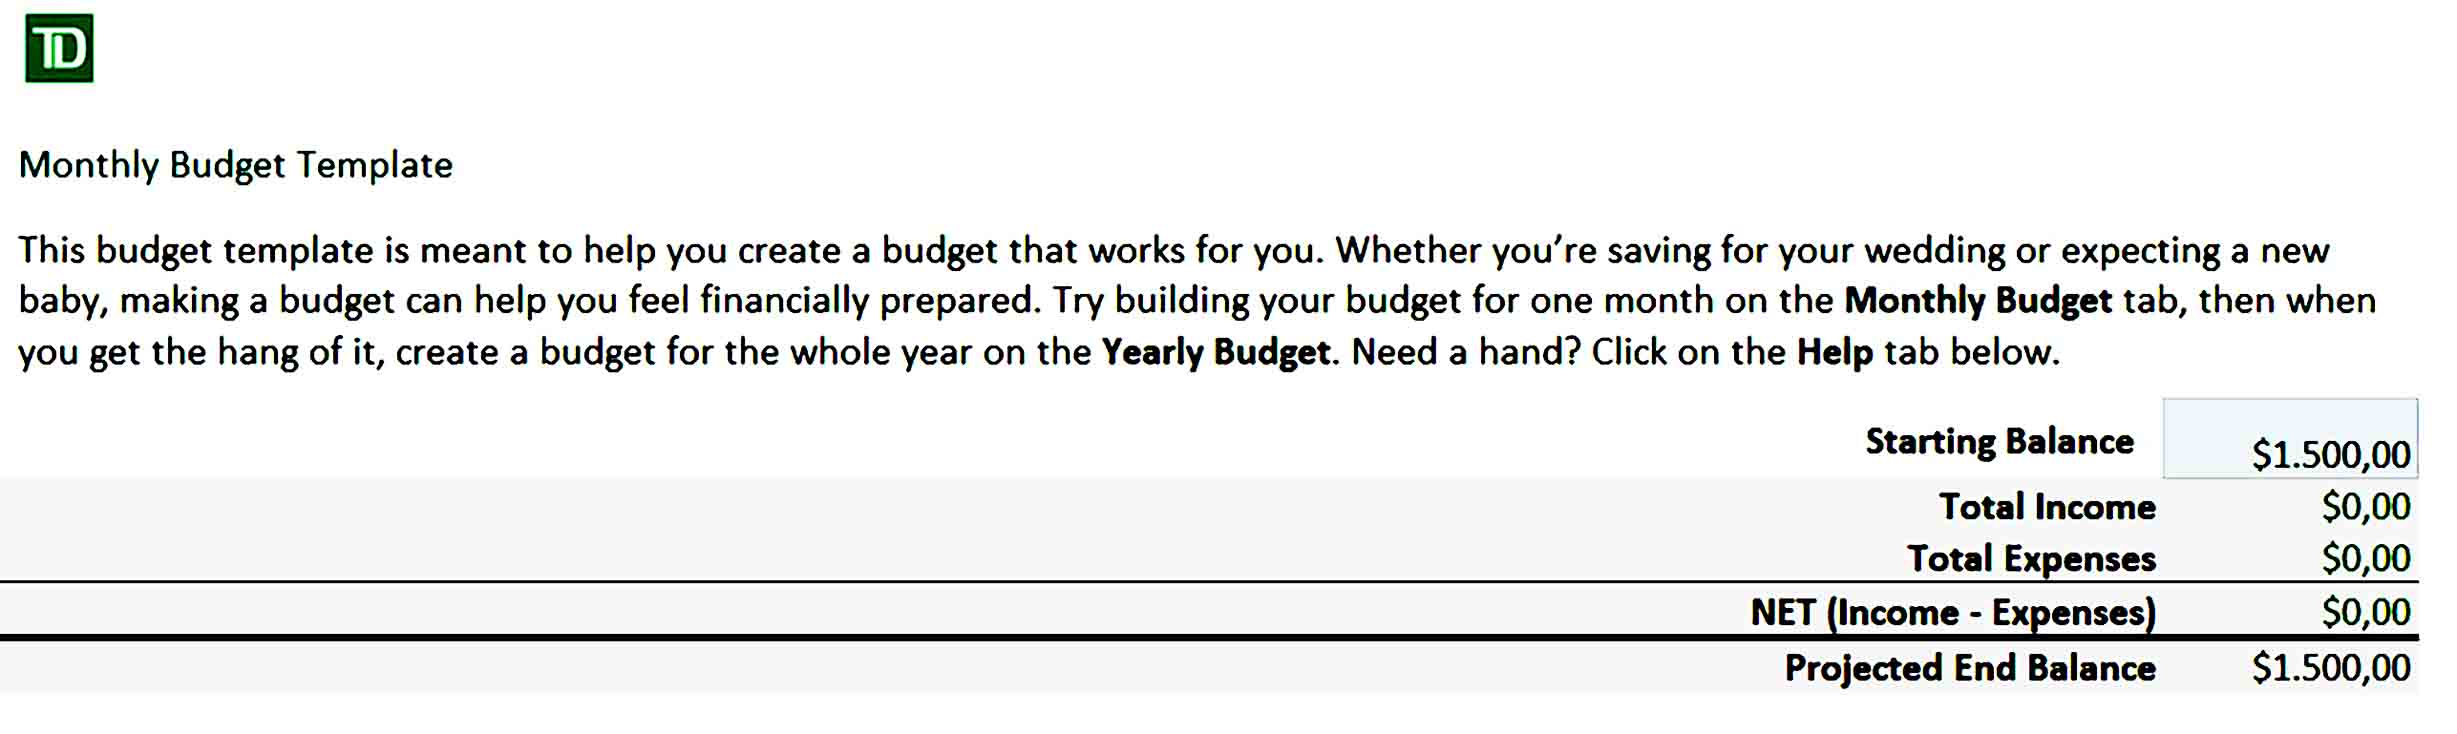 Partners Monthly Budget Template